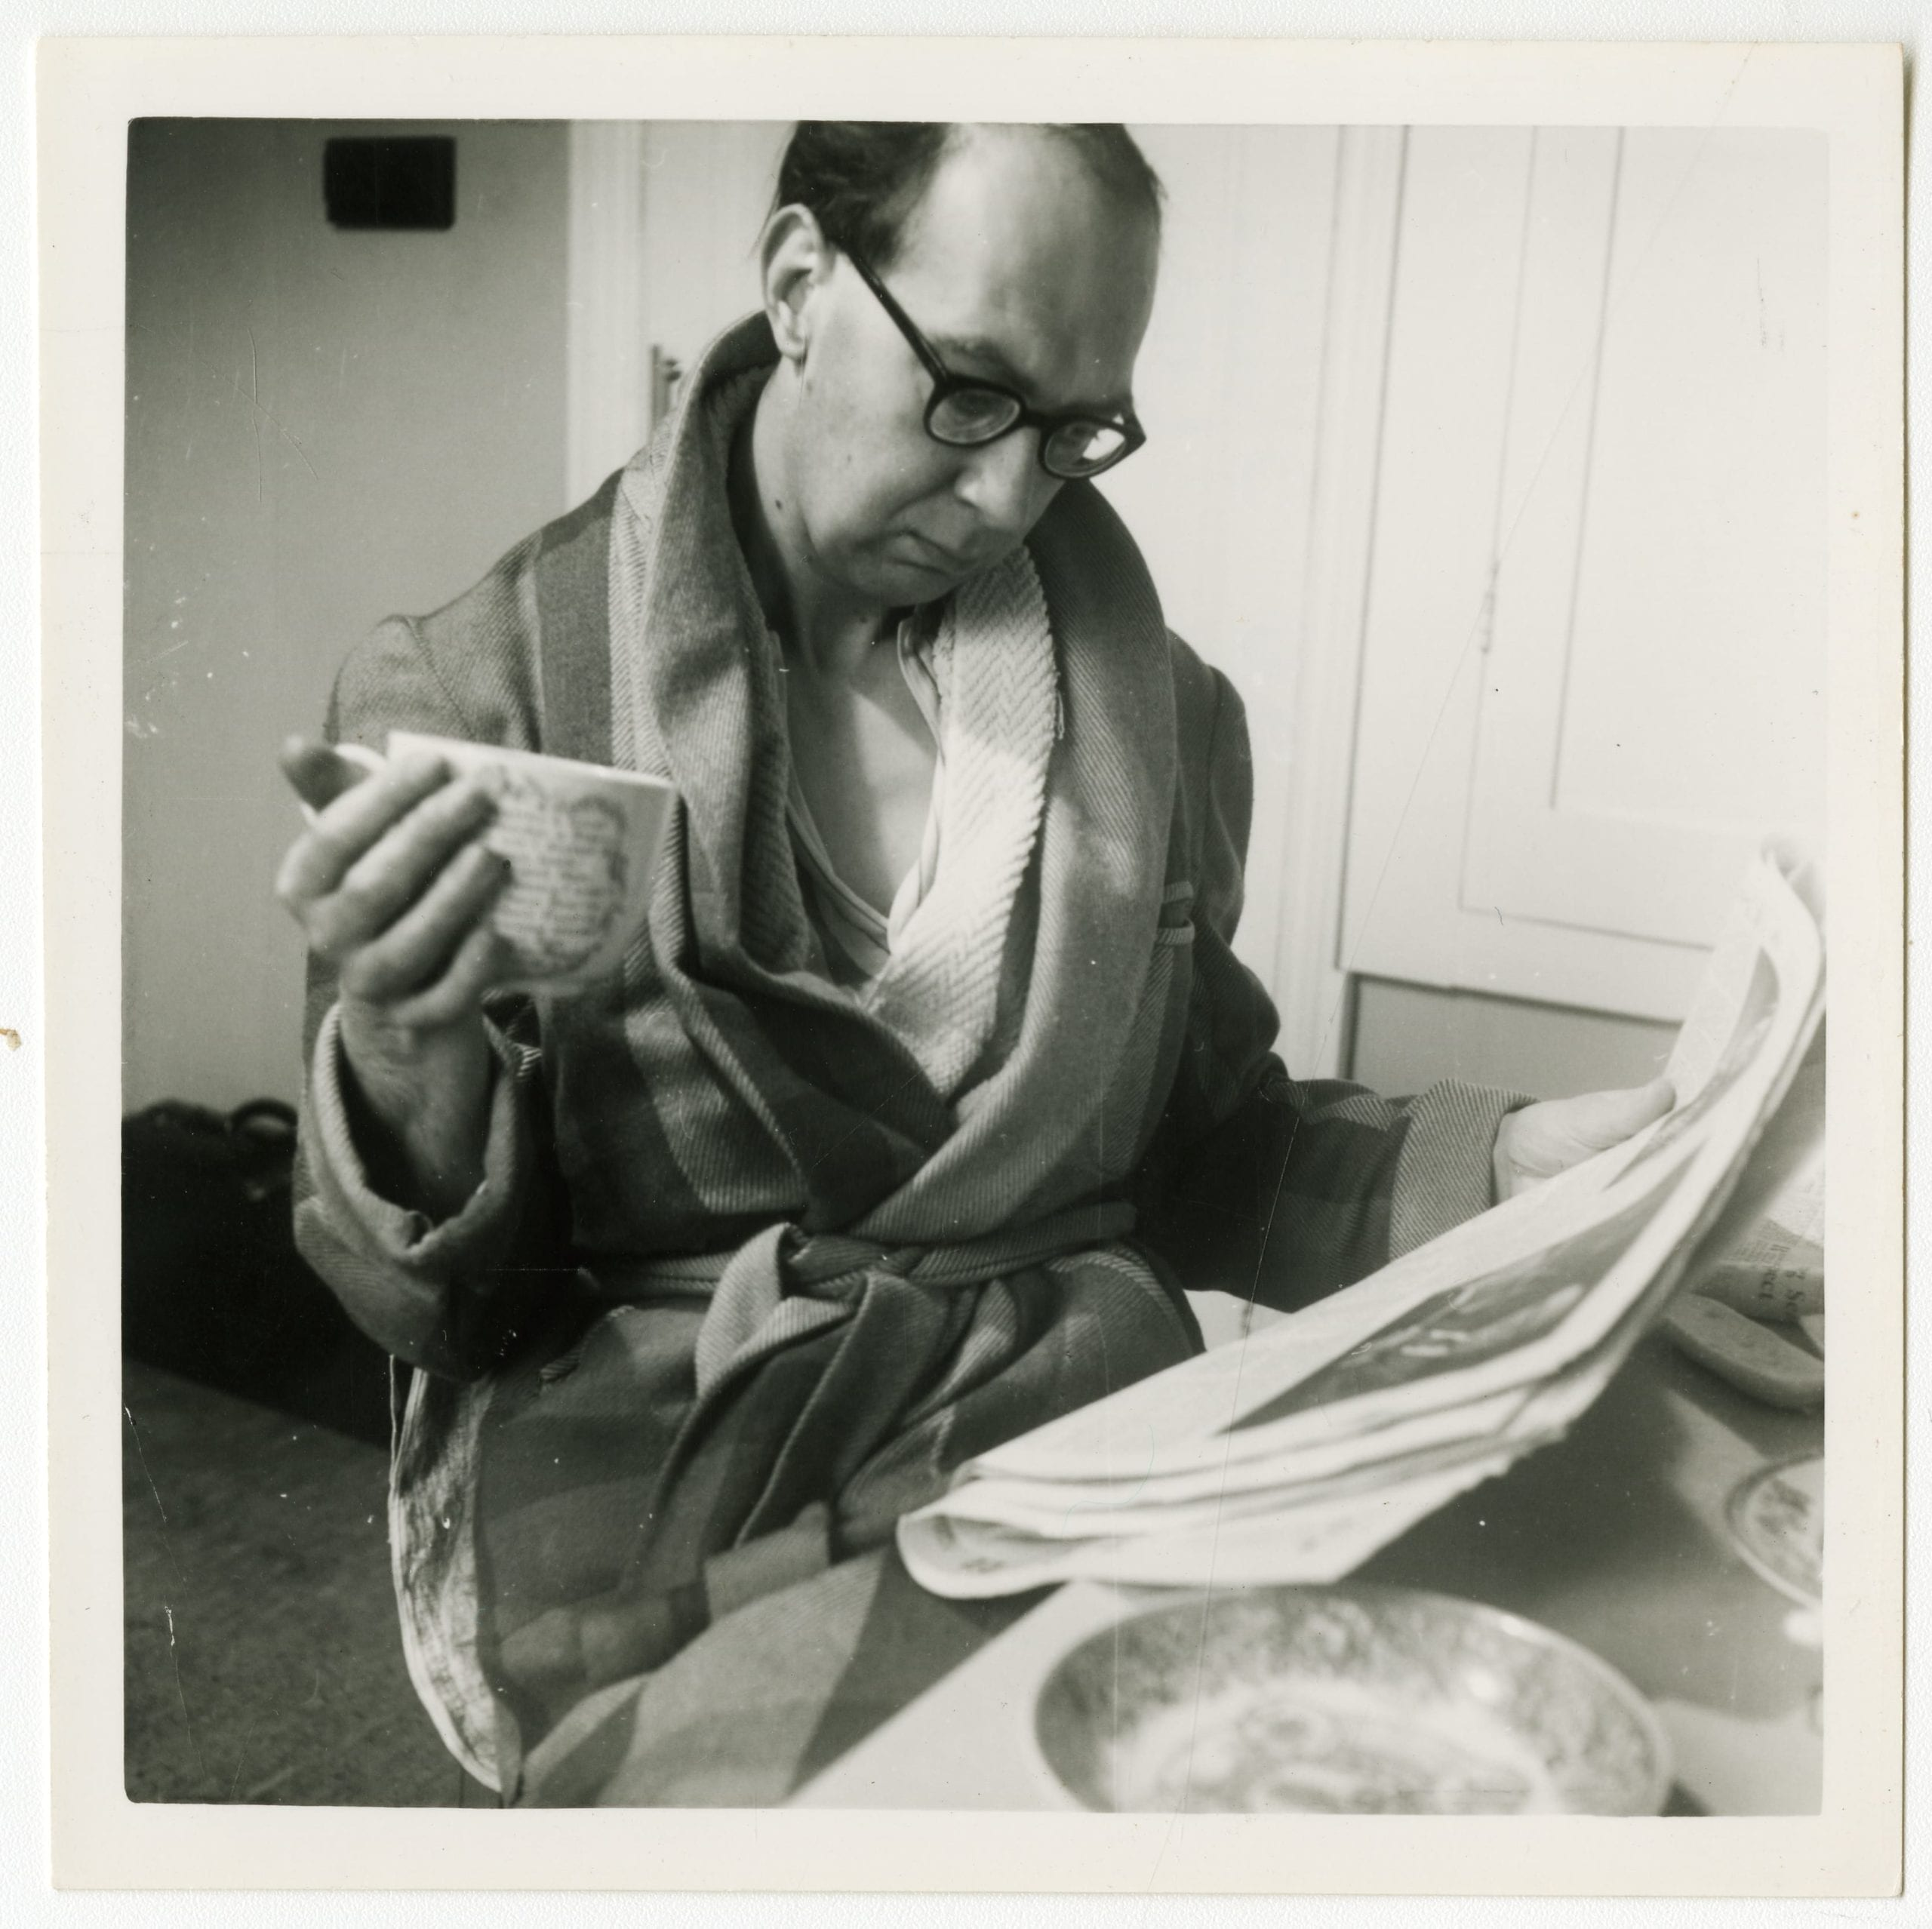 k i s s philip larkin the auto erotic portrait photographer as mark haworth booth notes in his introduction to the book several prints were inscribed by larkin technical data